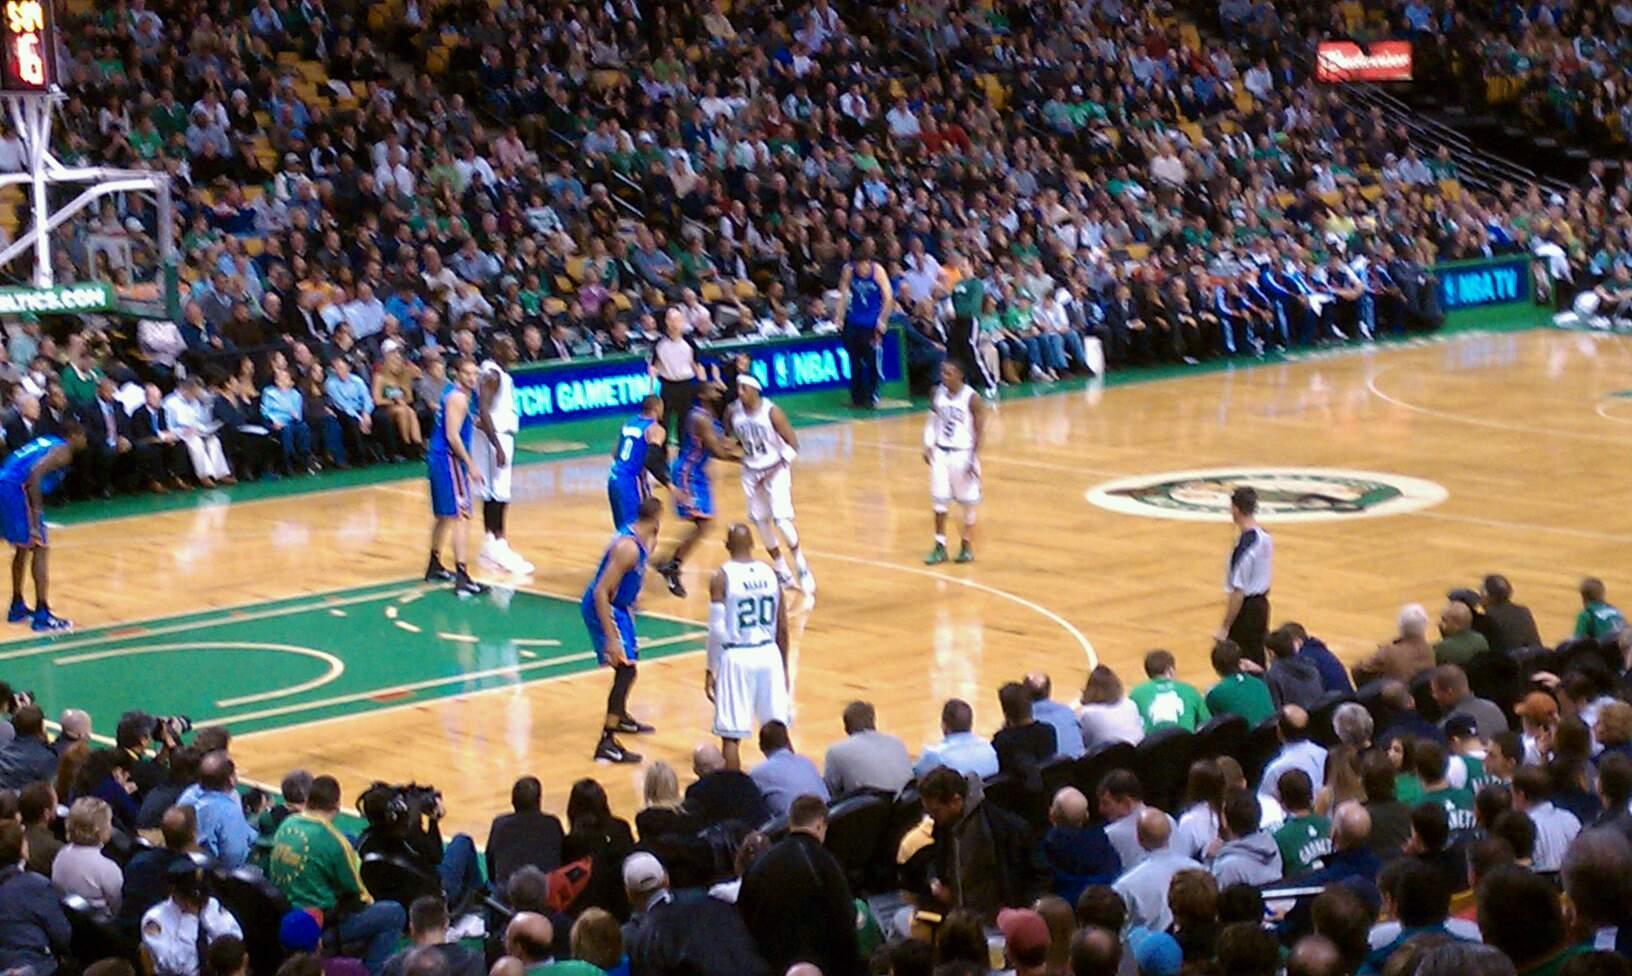 TD Garden Section Loge 15 Row 15 Seat 4